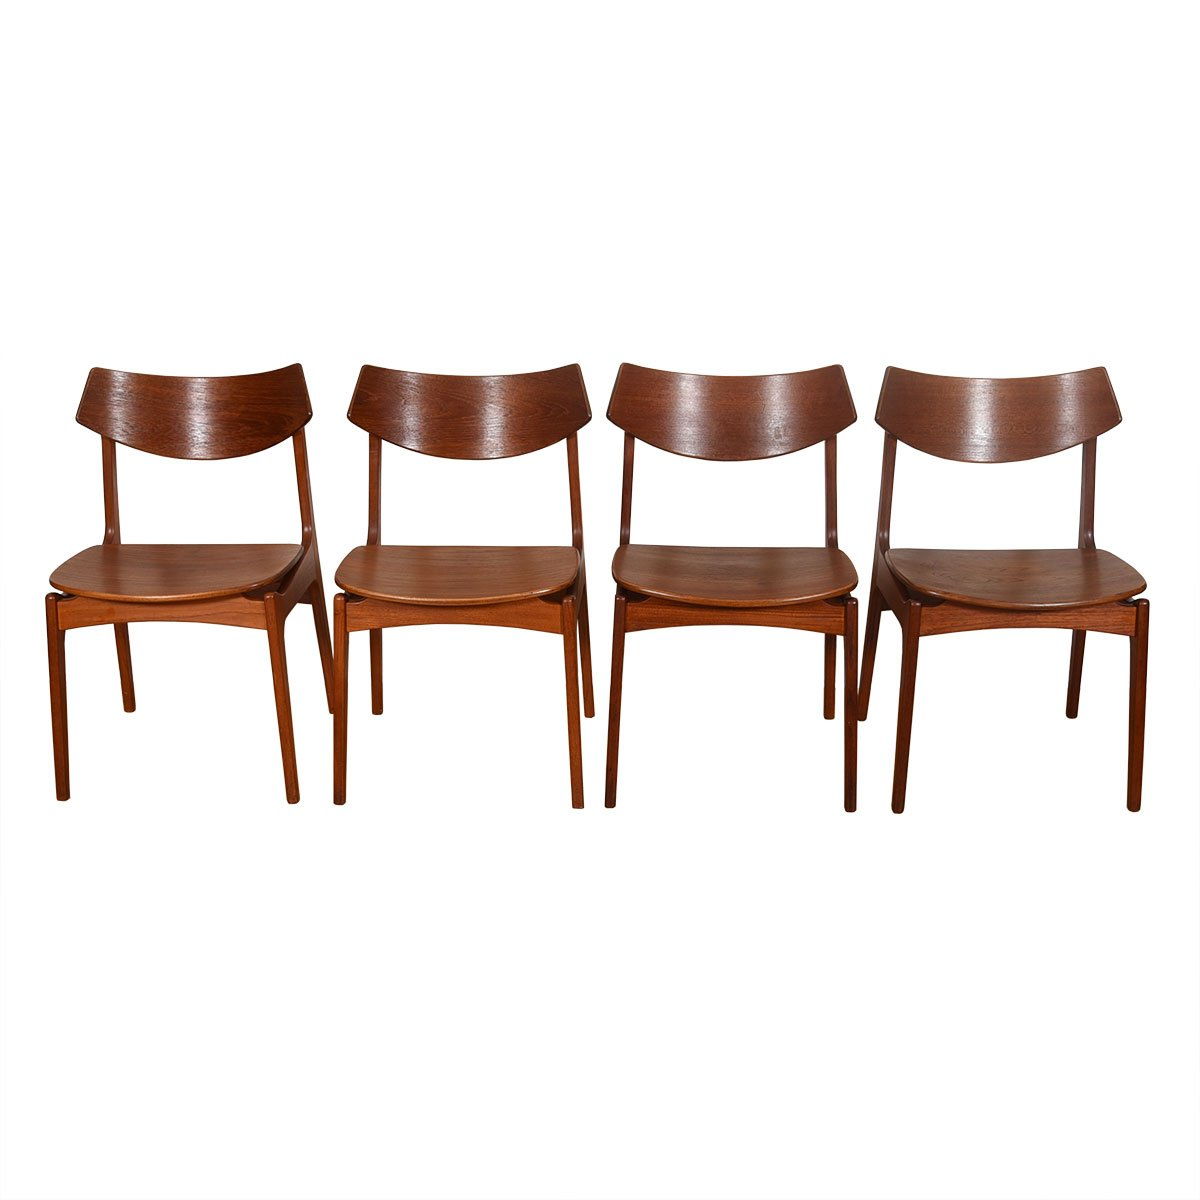 Set of 4 Danish Teak Curved Back Dining Chairs